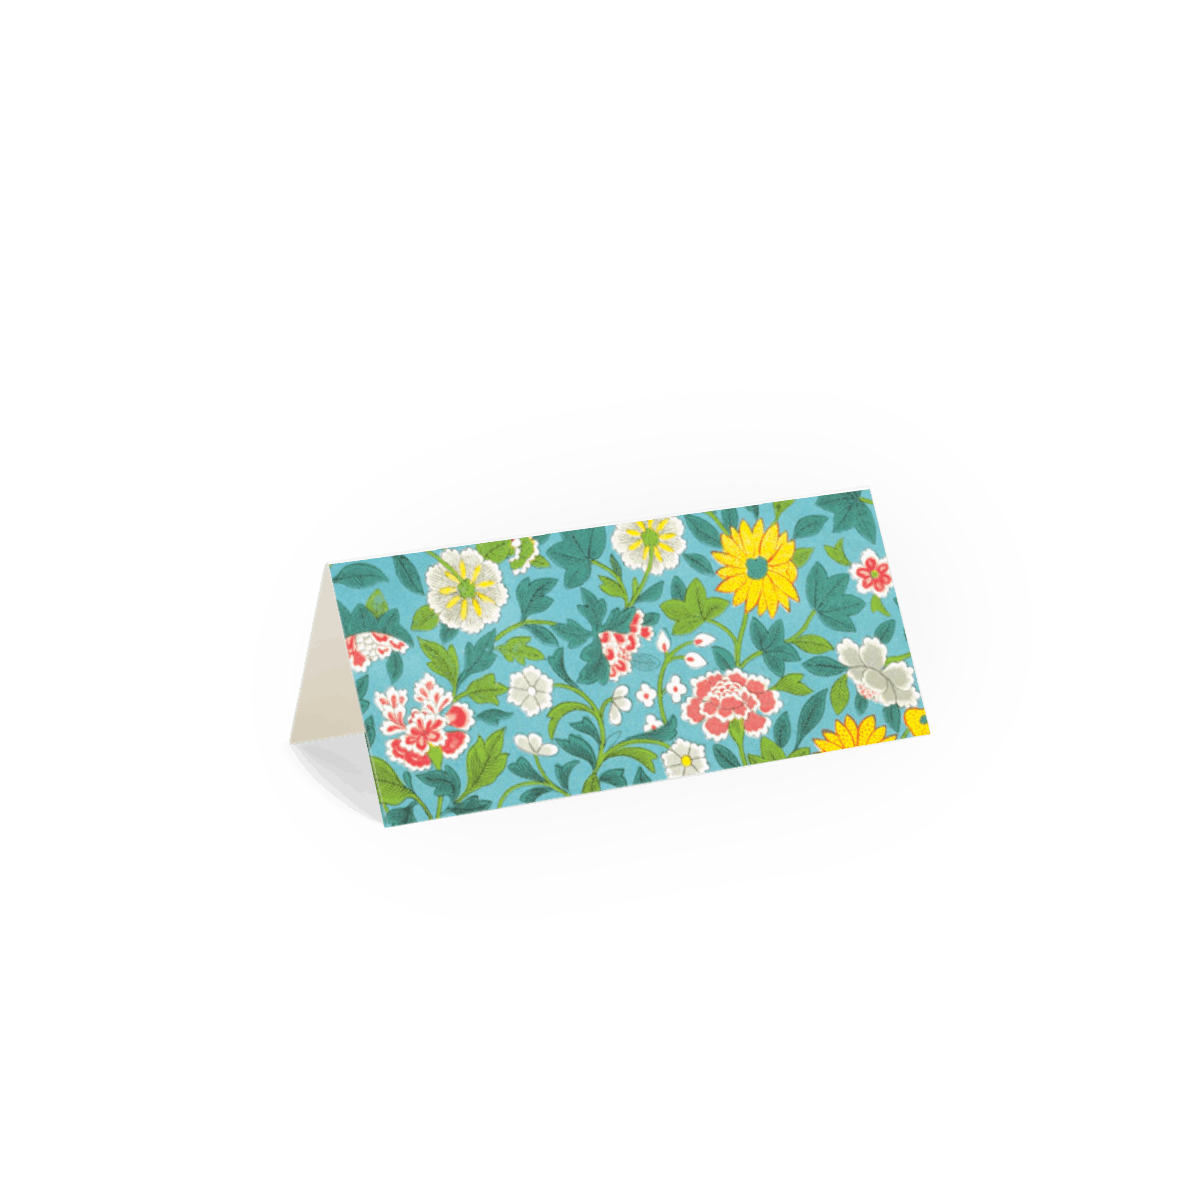 Https%3a%2f%2fwww.papier.com%2fproduct image%2f82584%2f15%2fwild meadow flowers 19996 arriere 1562159389.png?ixlib=rb 1.1